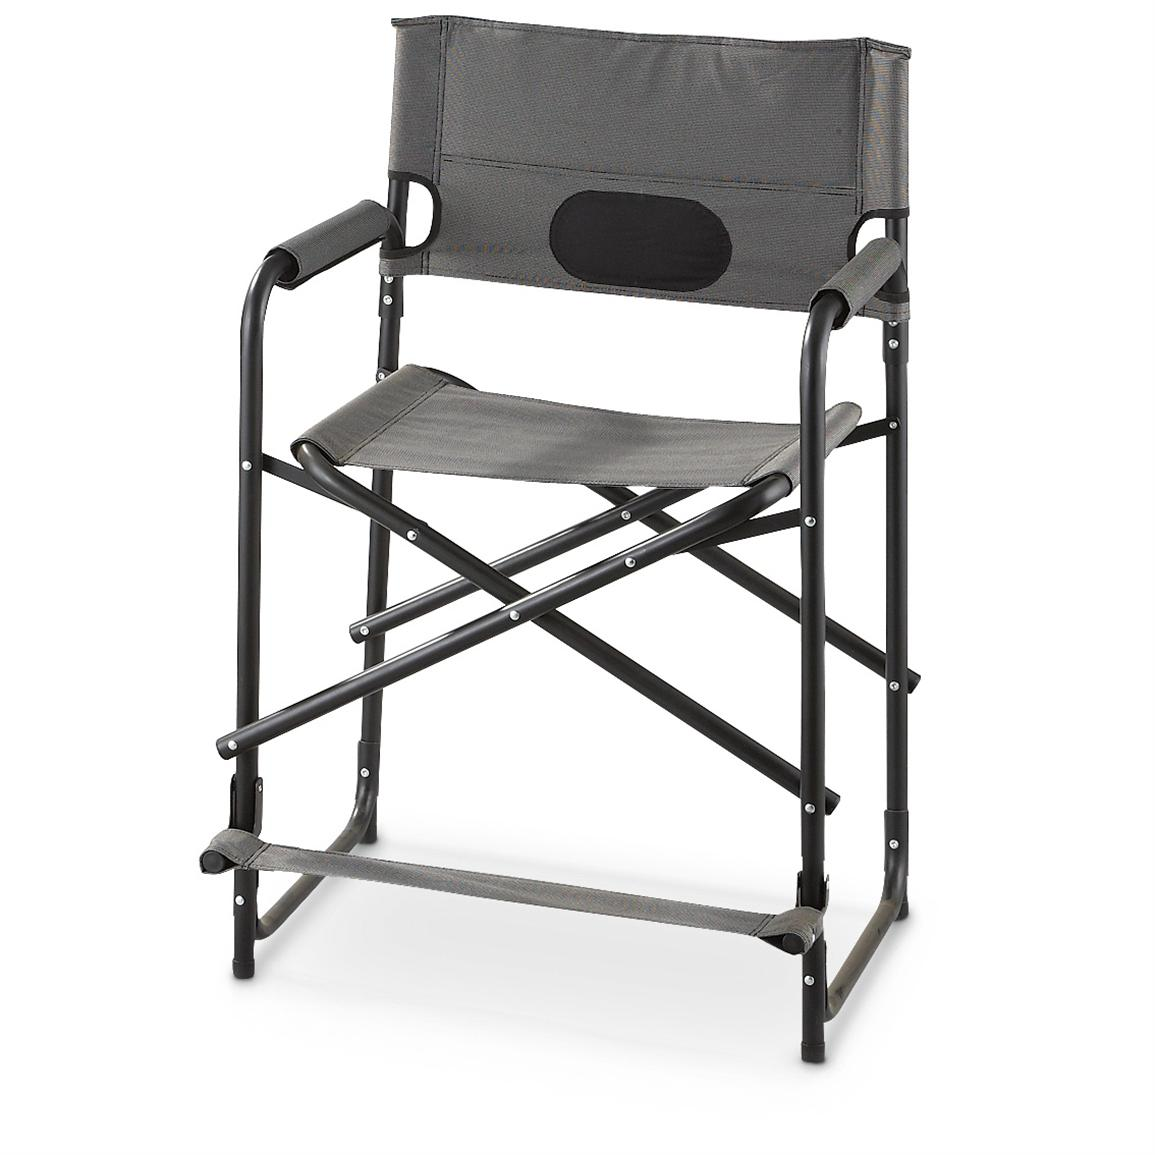 director chairs for sale computer chair office depot guide gear tall 39s 215718 at